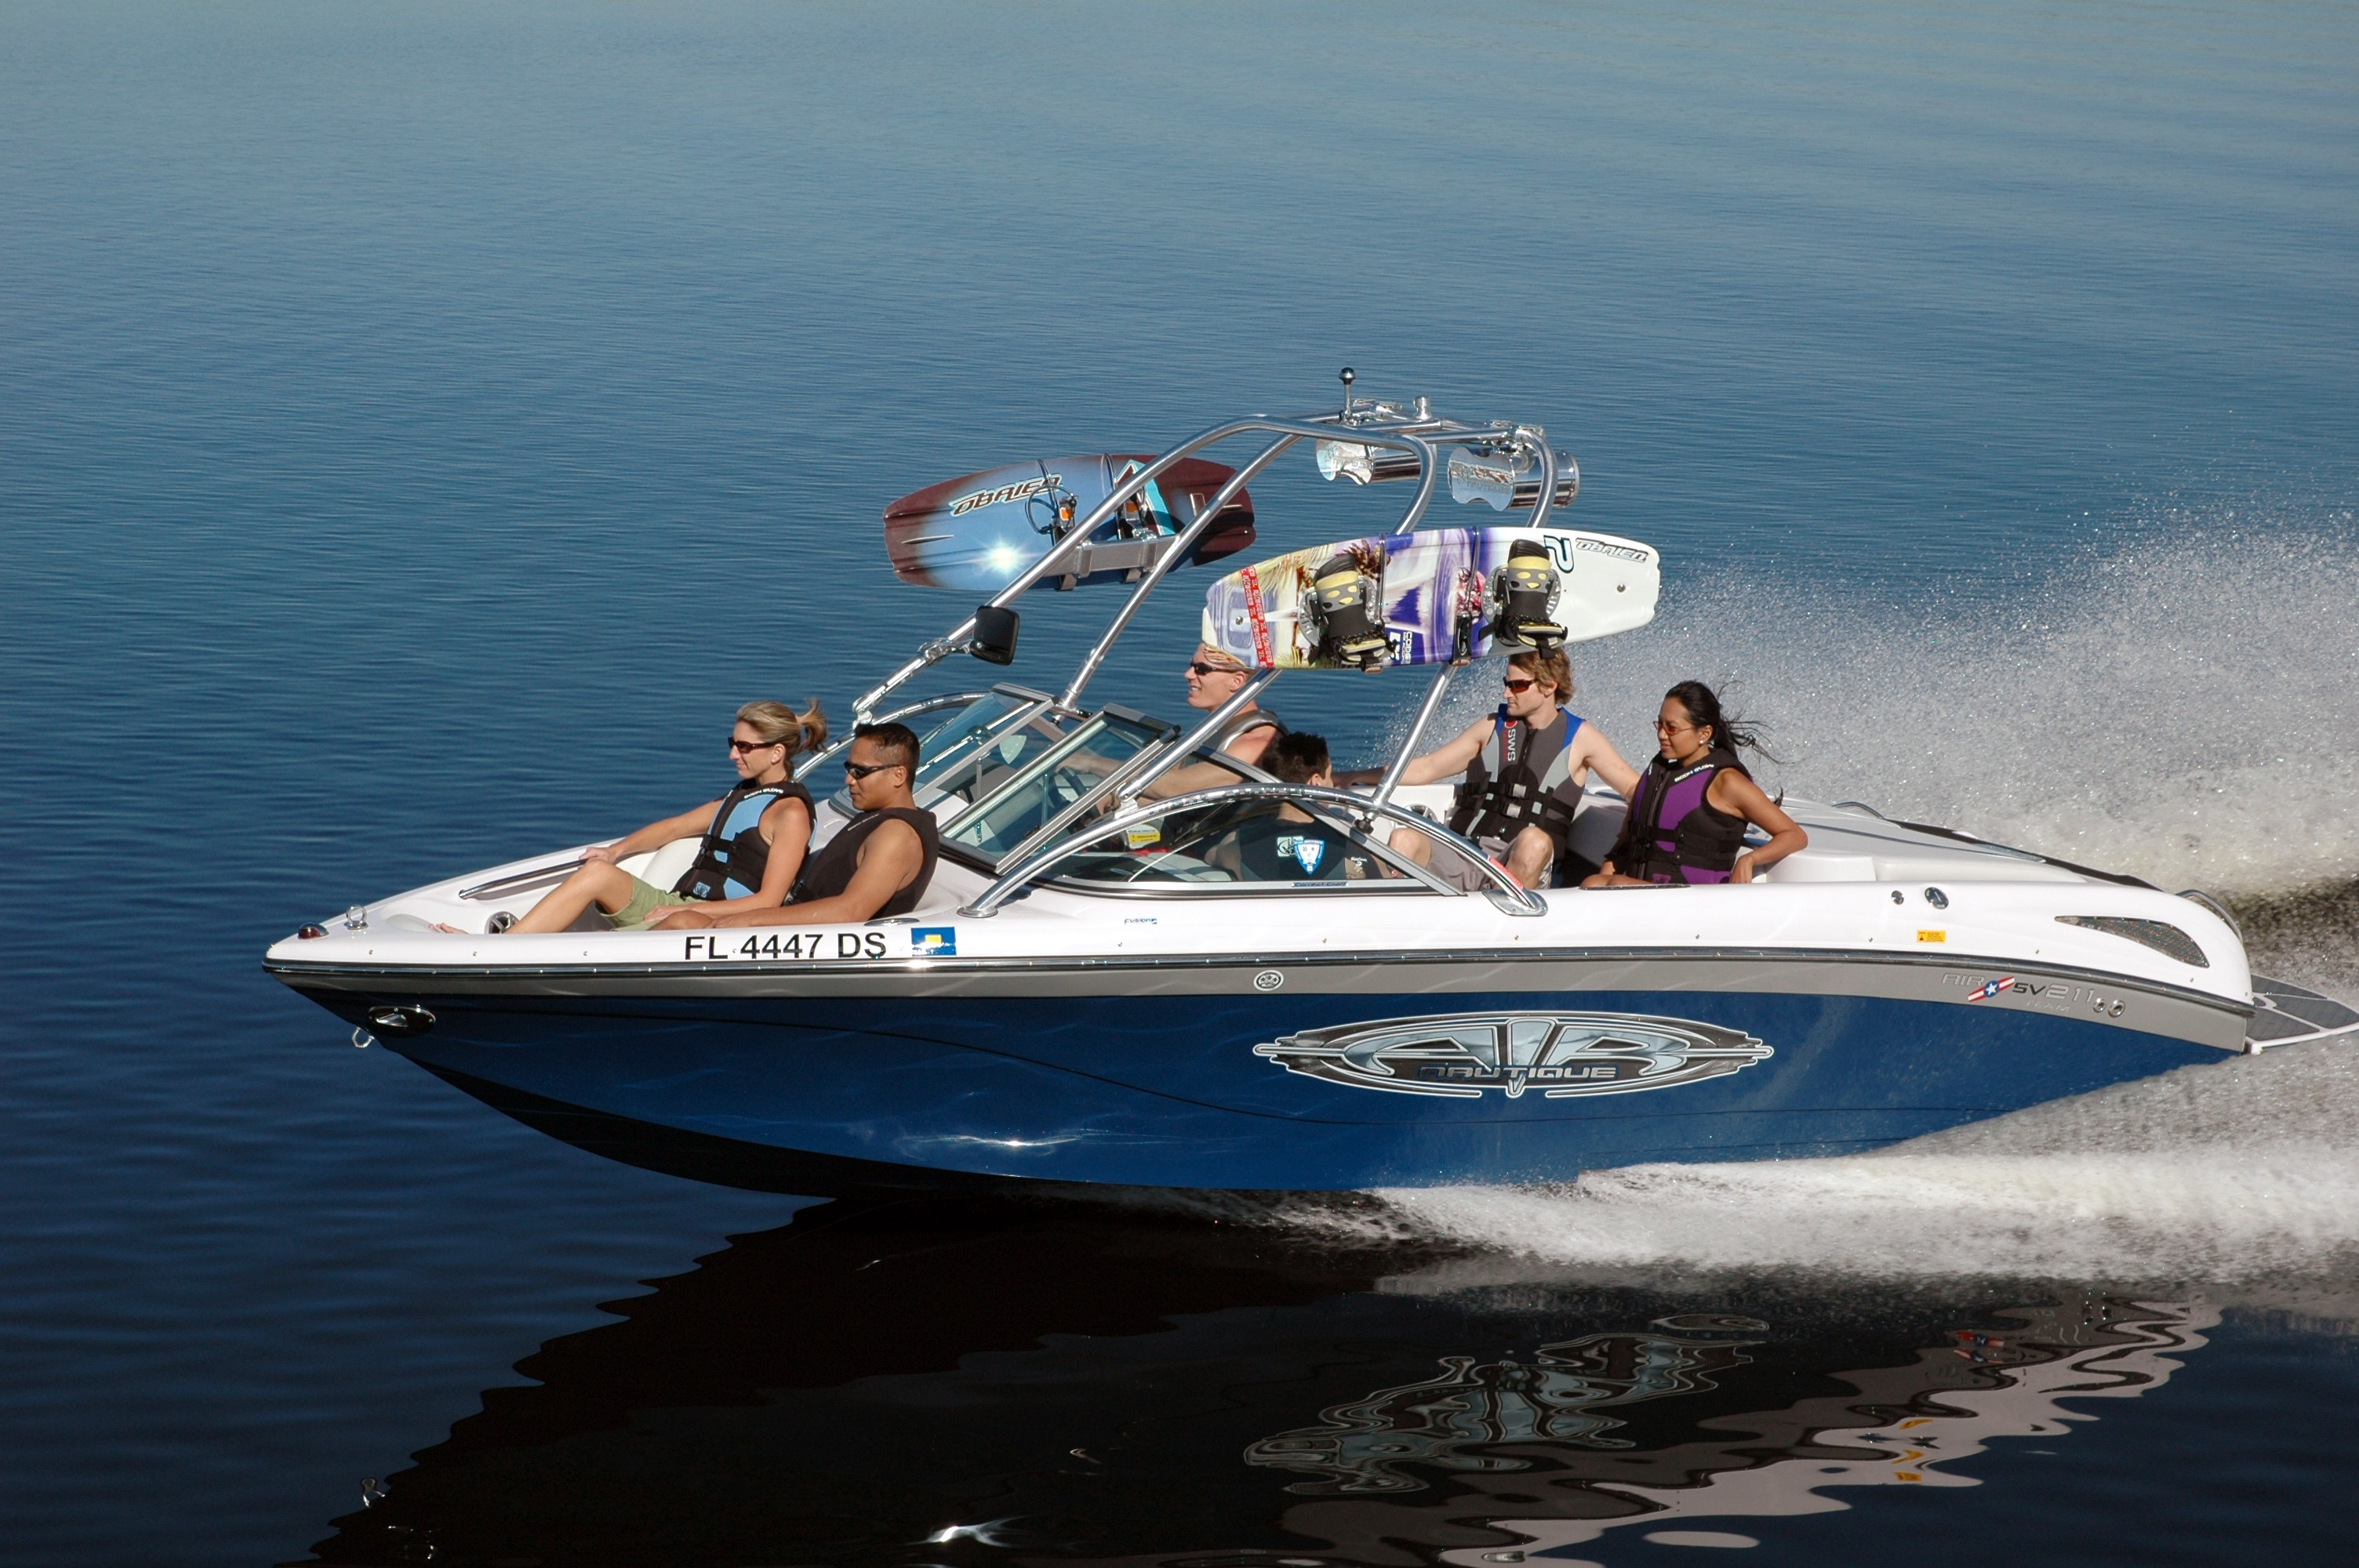 Sun Protection Tips For Boaters